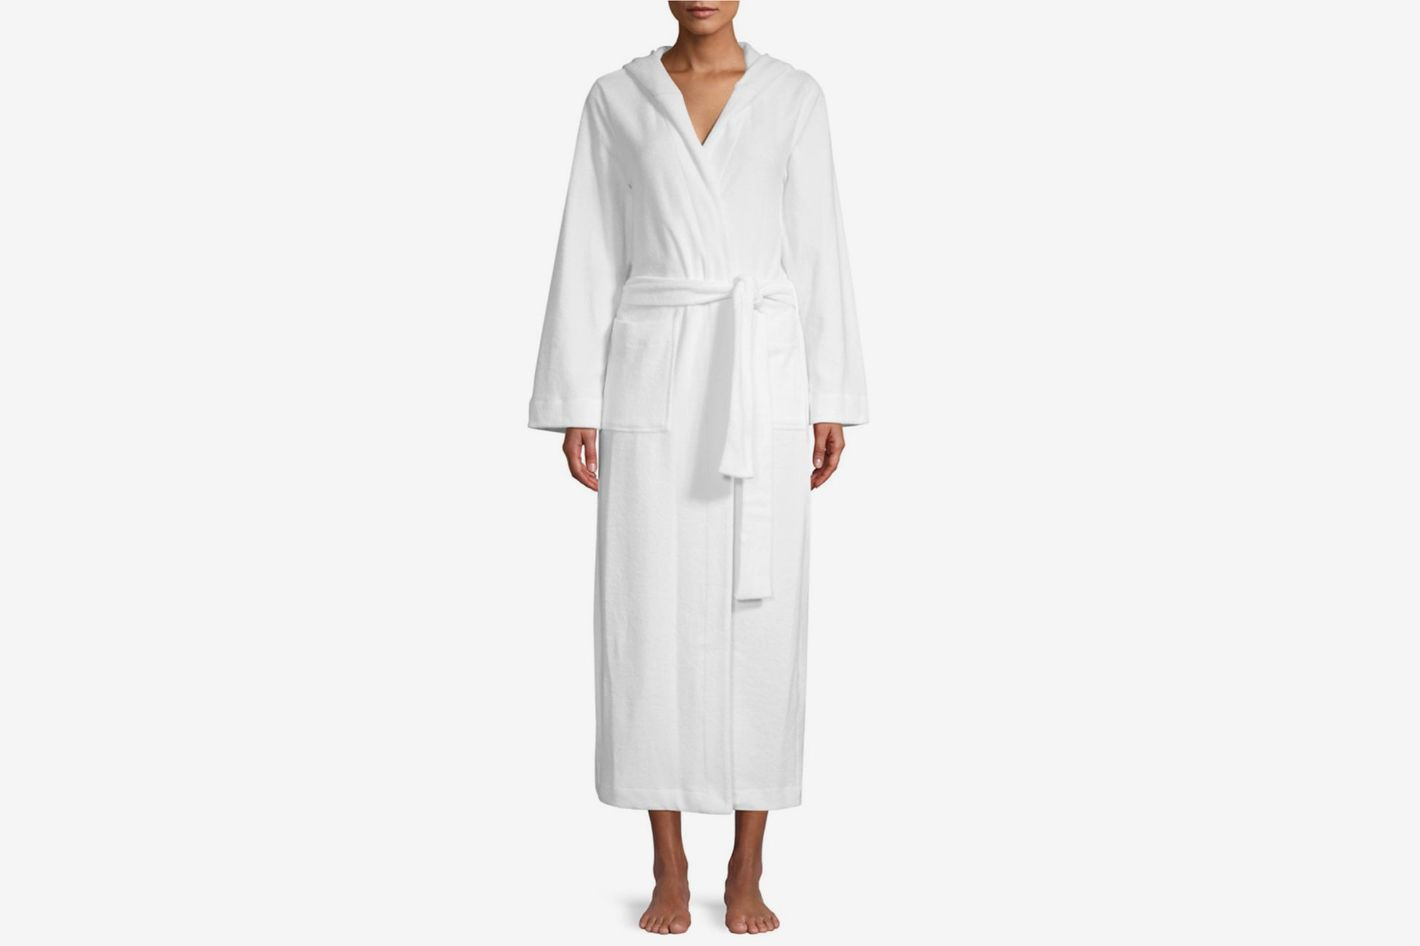 4d92421a2b69 12 Best Bathrobes for Women 2018